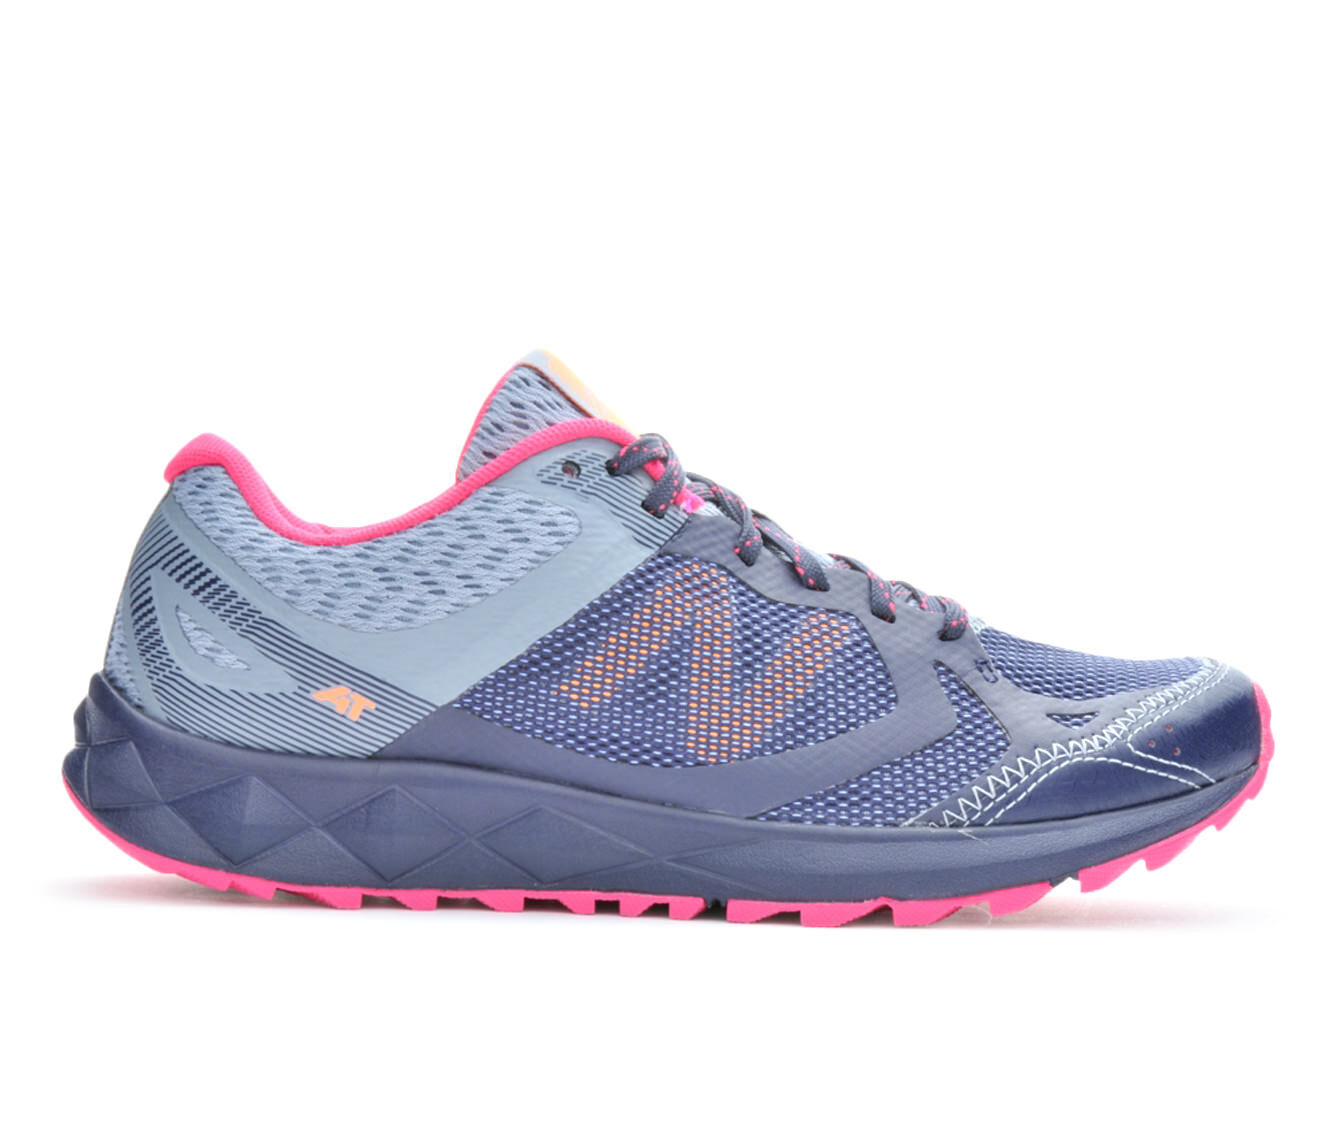 new balance women's 515 casual sneakers